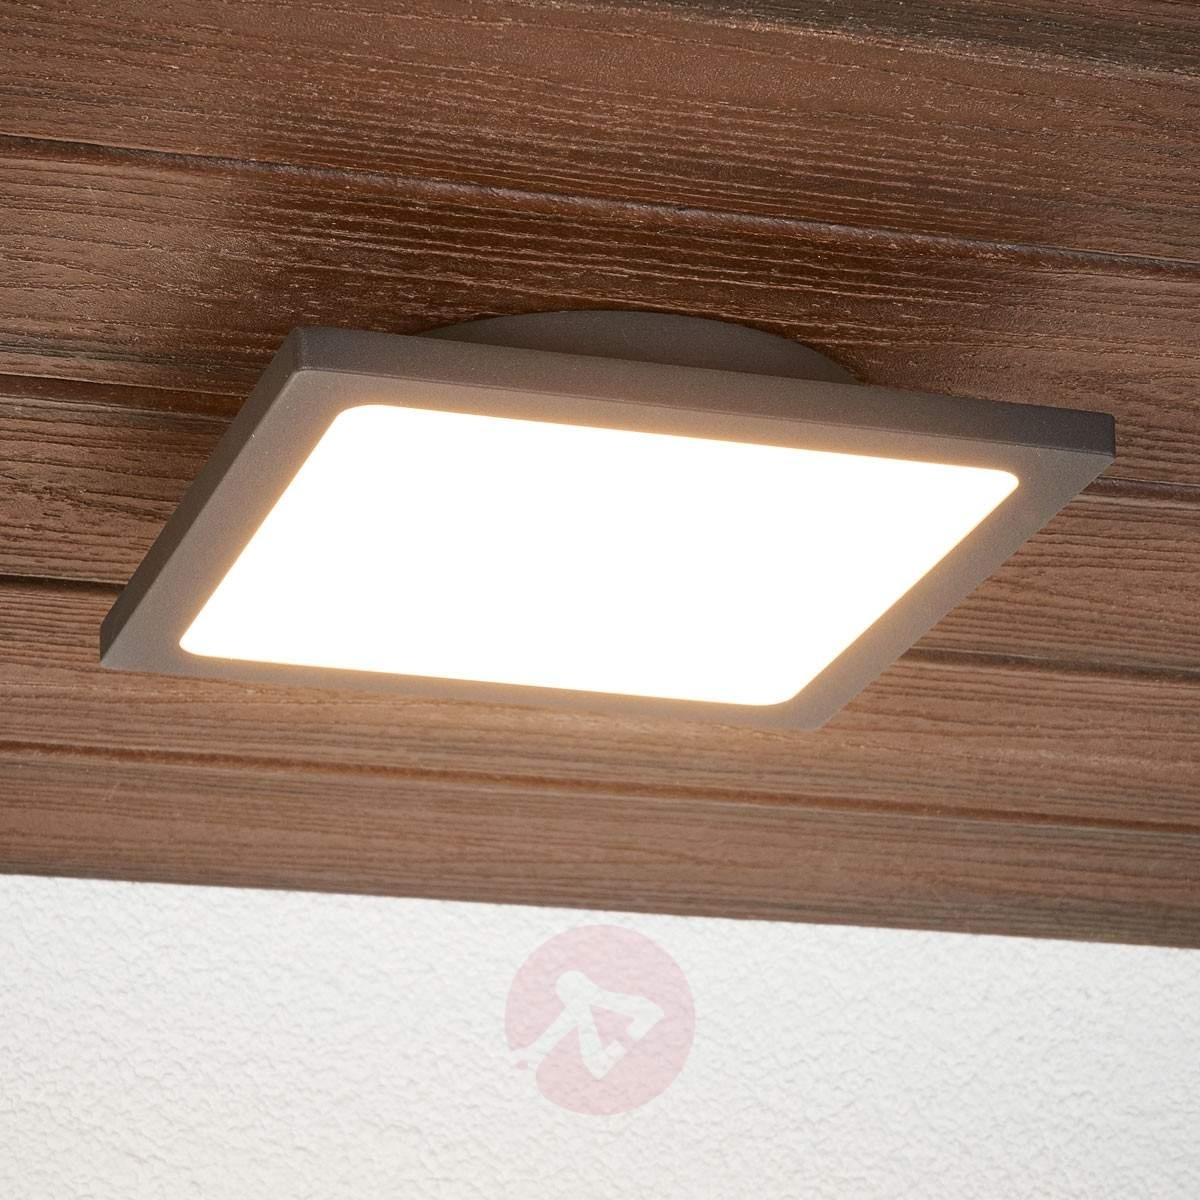 Popular Photo of Outdoor Ceiling Lights With Sensor